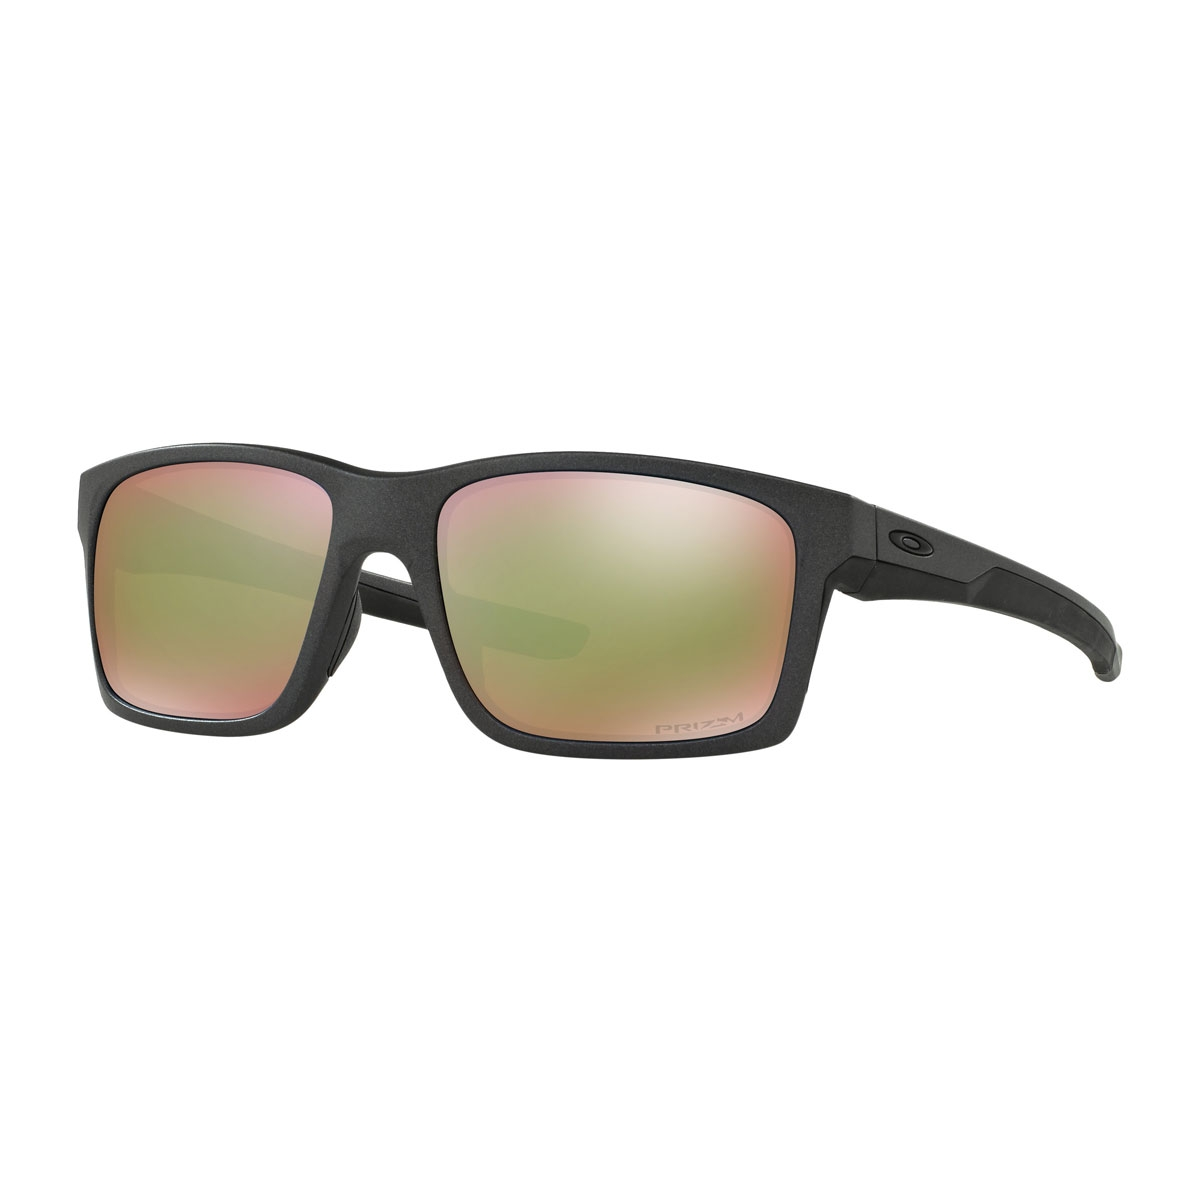 912fcf9dc2 Image of Oakley Mainlink Prizm Shallow Water Polarized Sunglasses - Steel  Frame Prizm Shallow Water